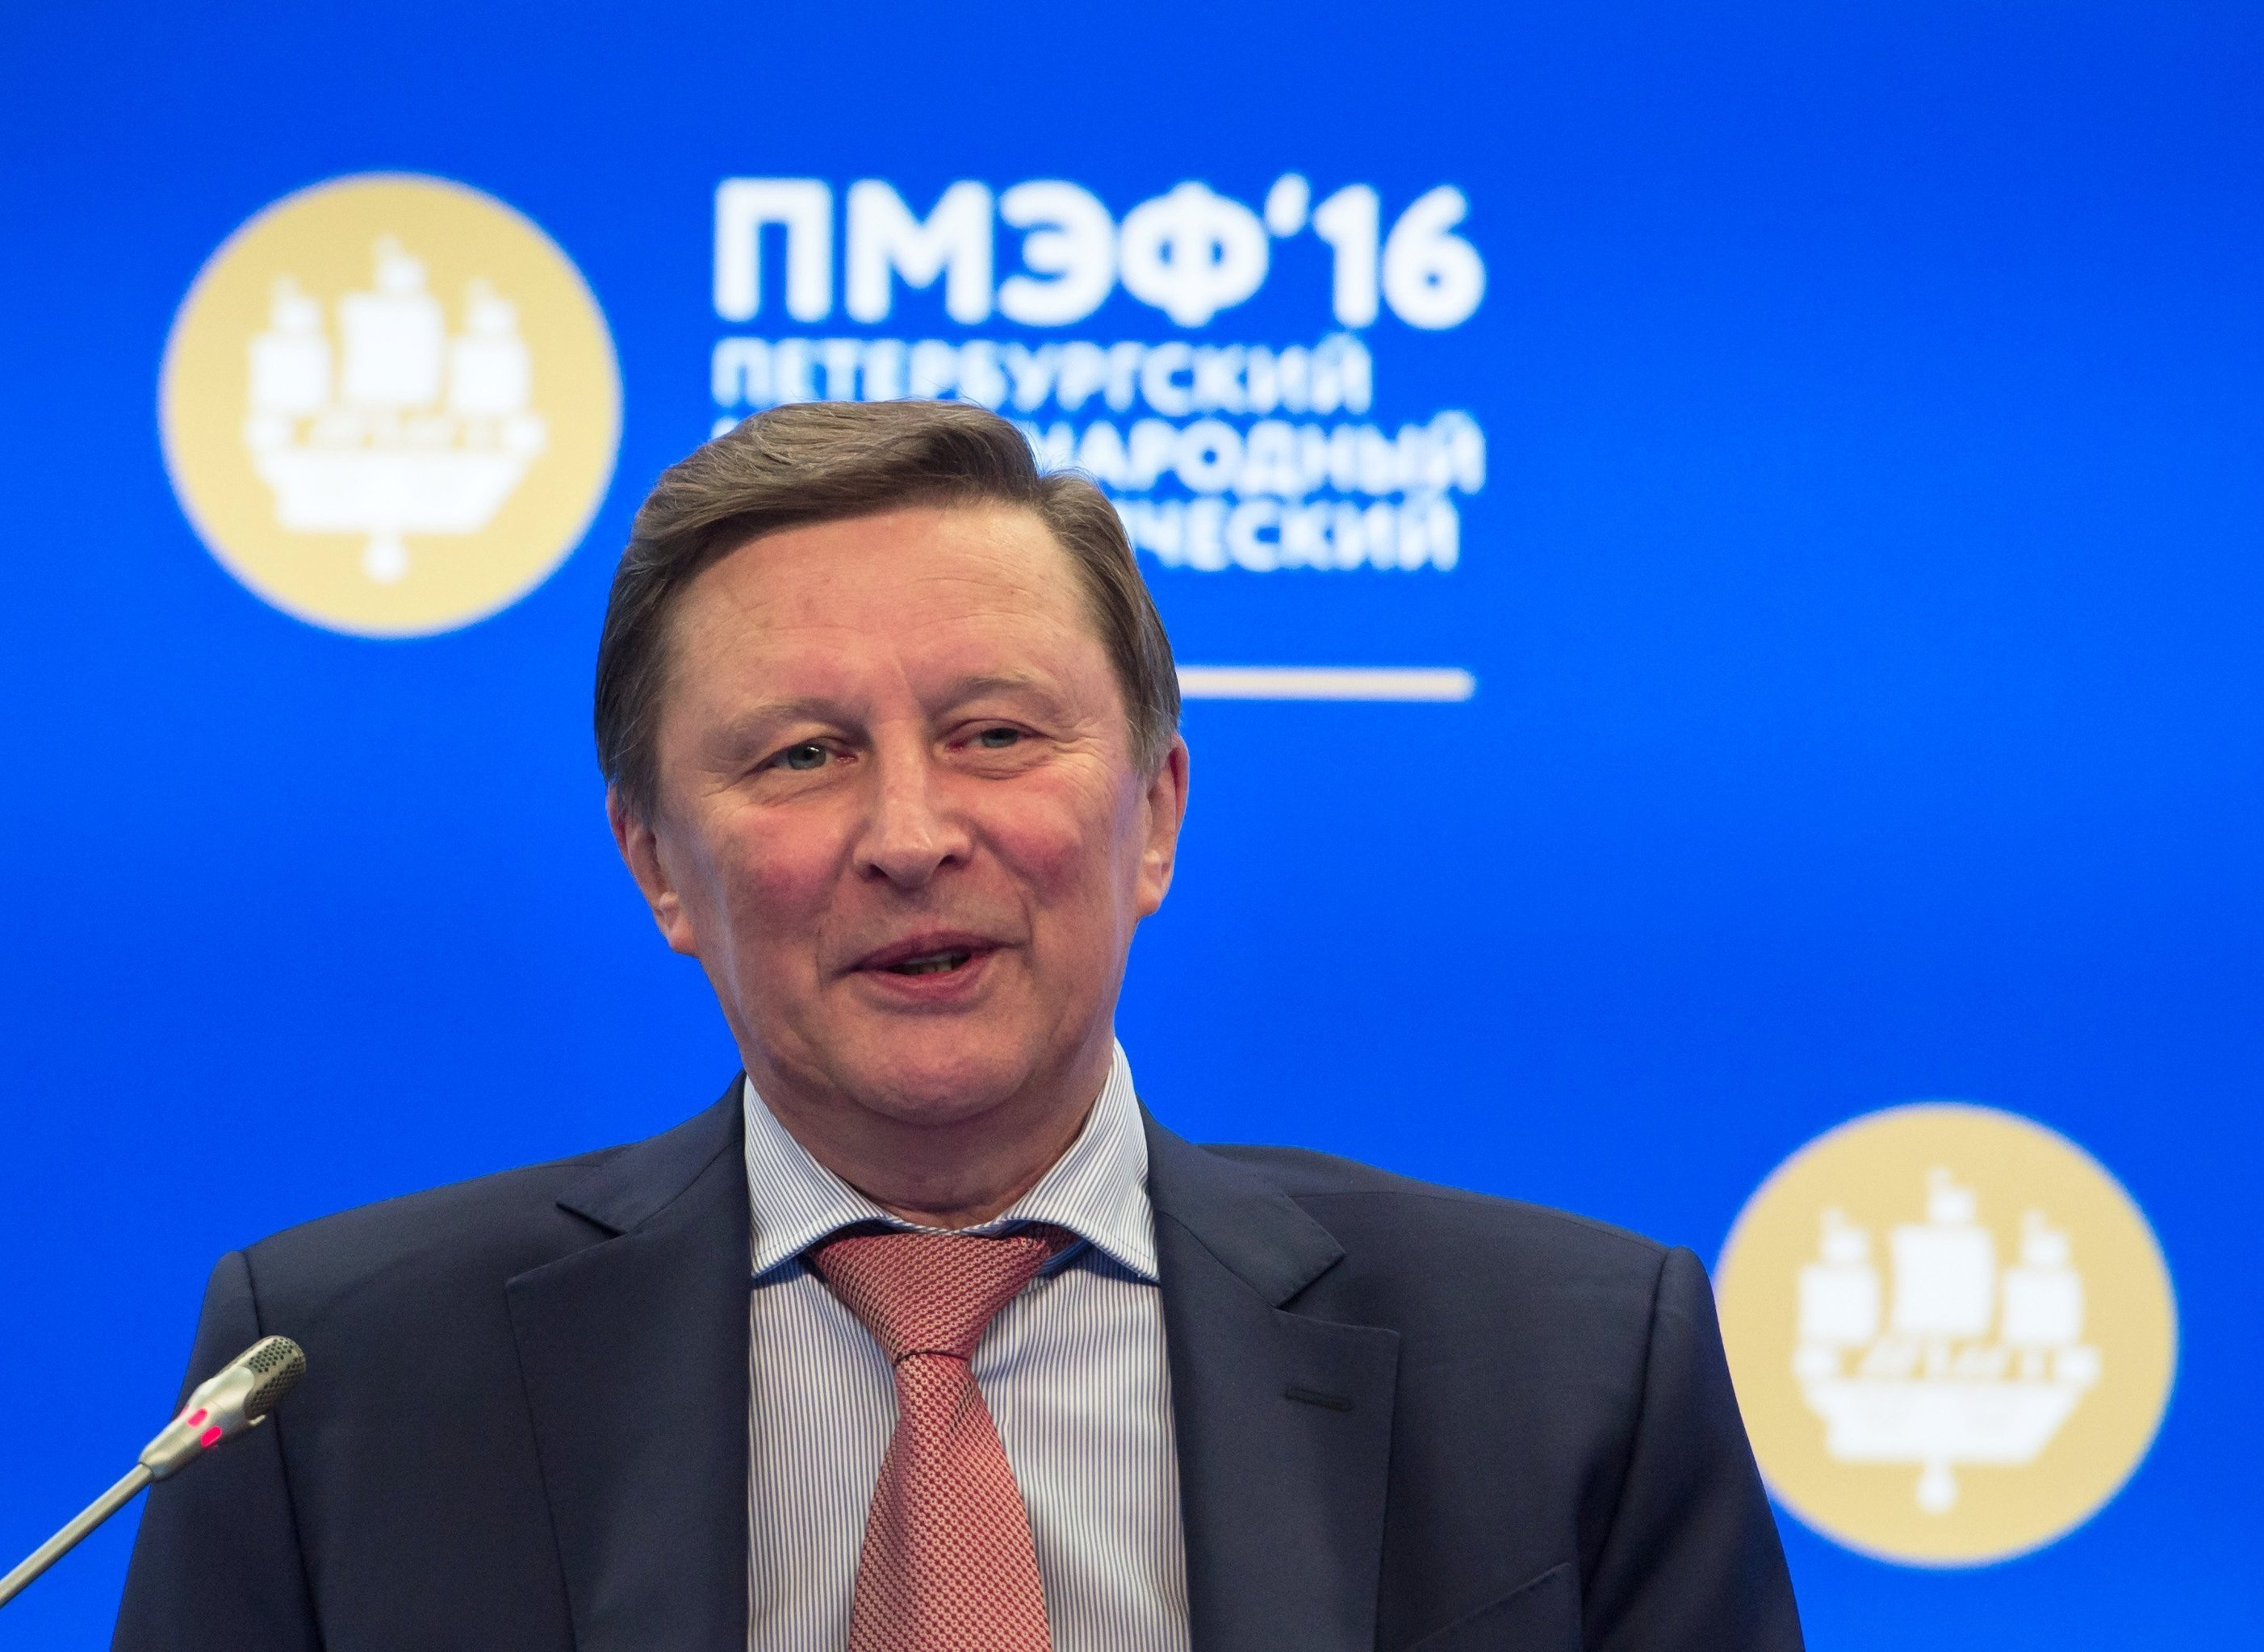 Sergei Ivanov, Chief of Staff of the Presidential Executive Office of the Russian Federation, at the panel session Boosting the Bottom Line with Clean Tech at the 20th St. Petersburg International Economic Forum